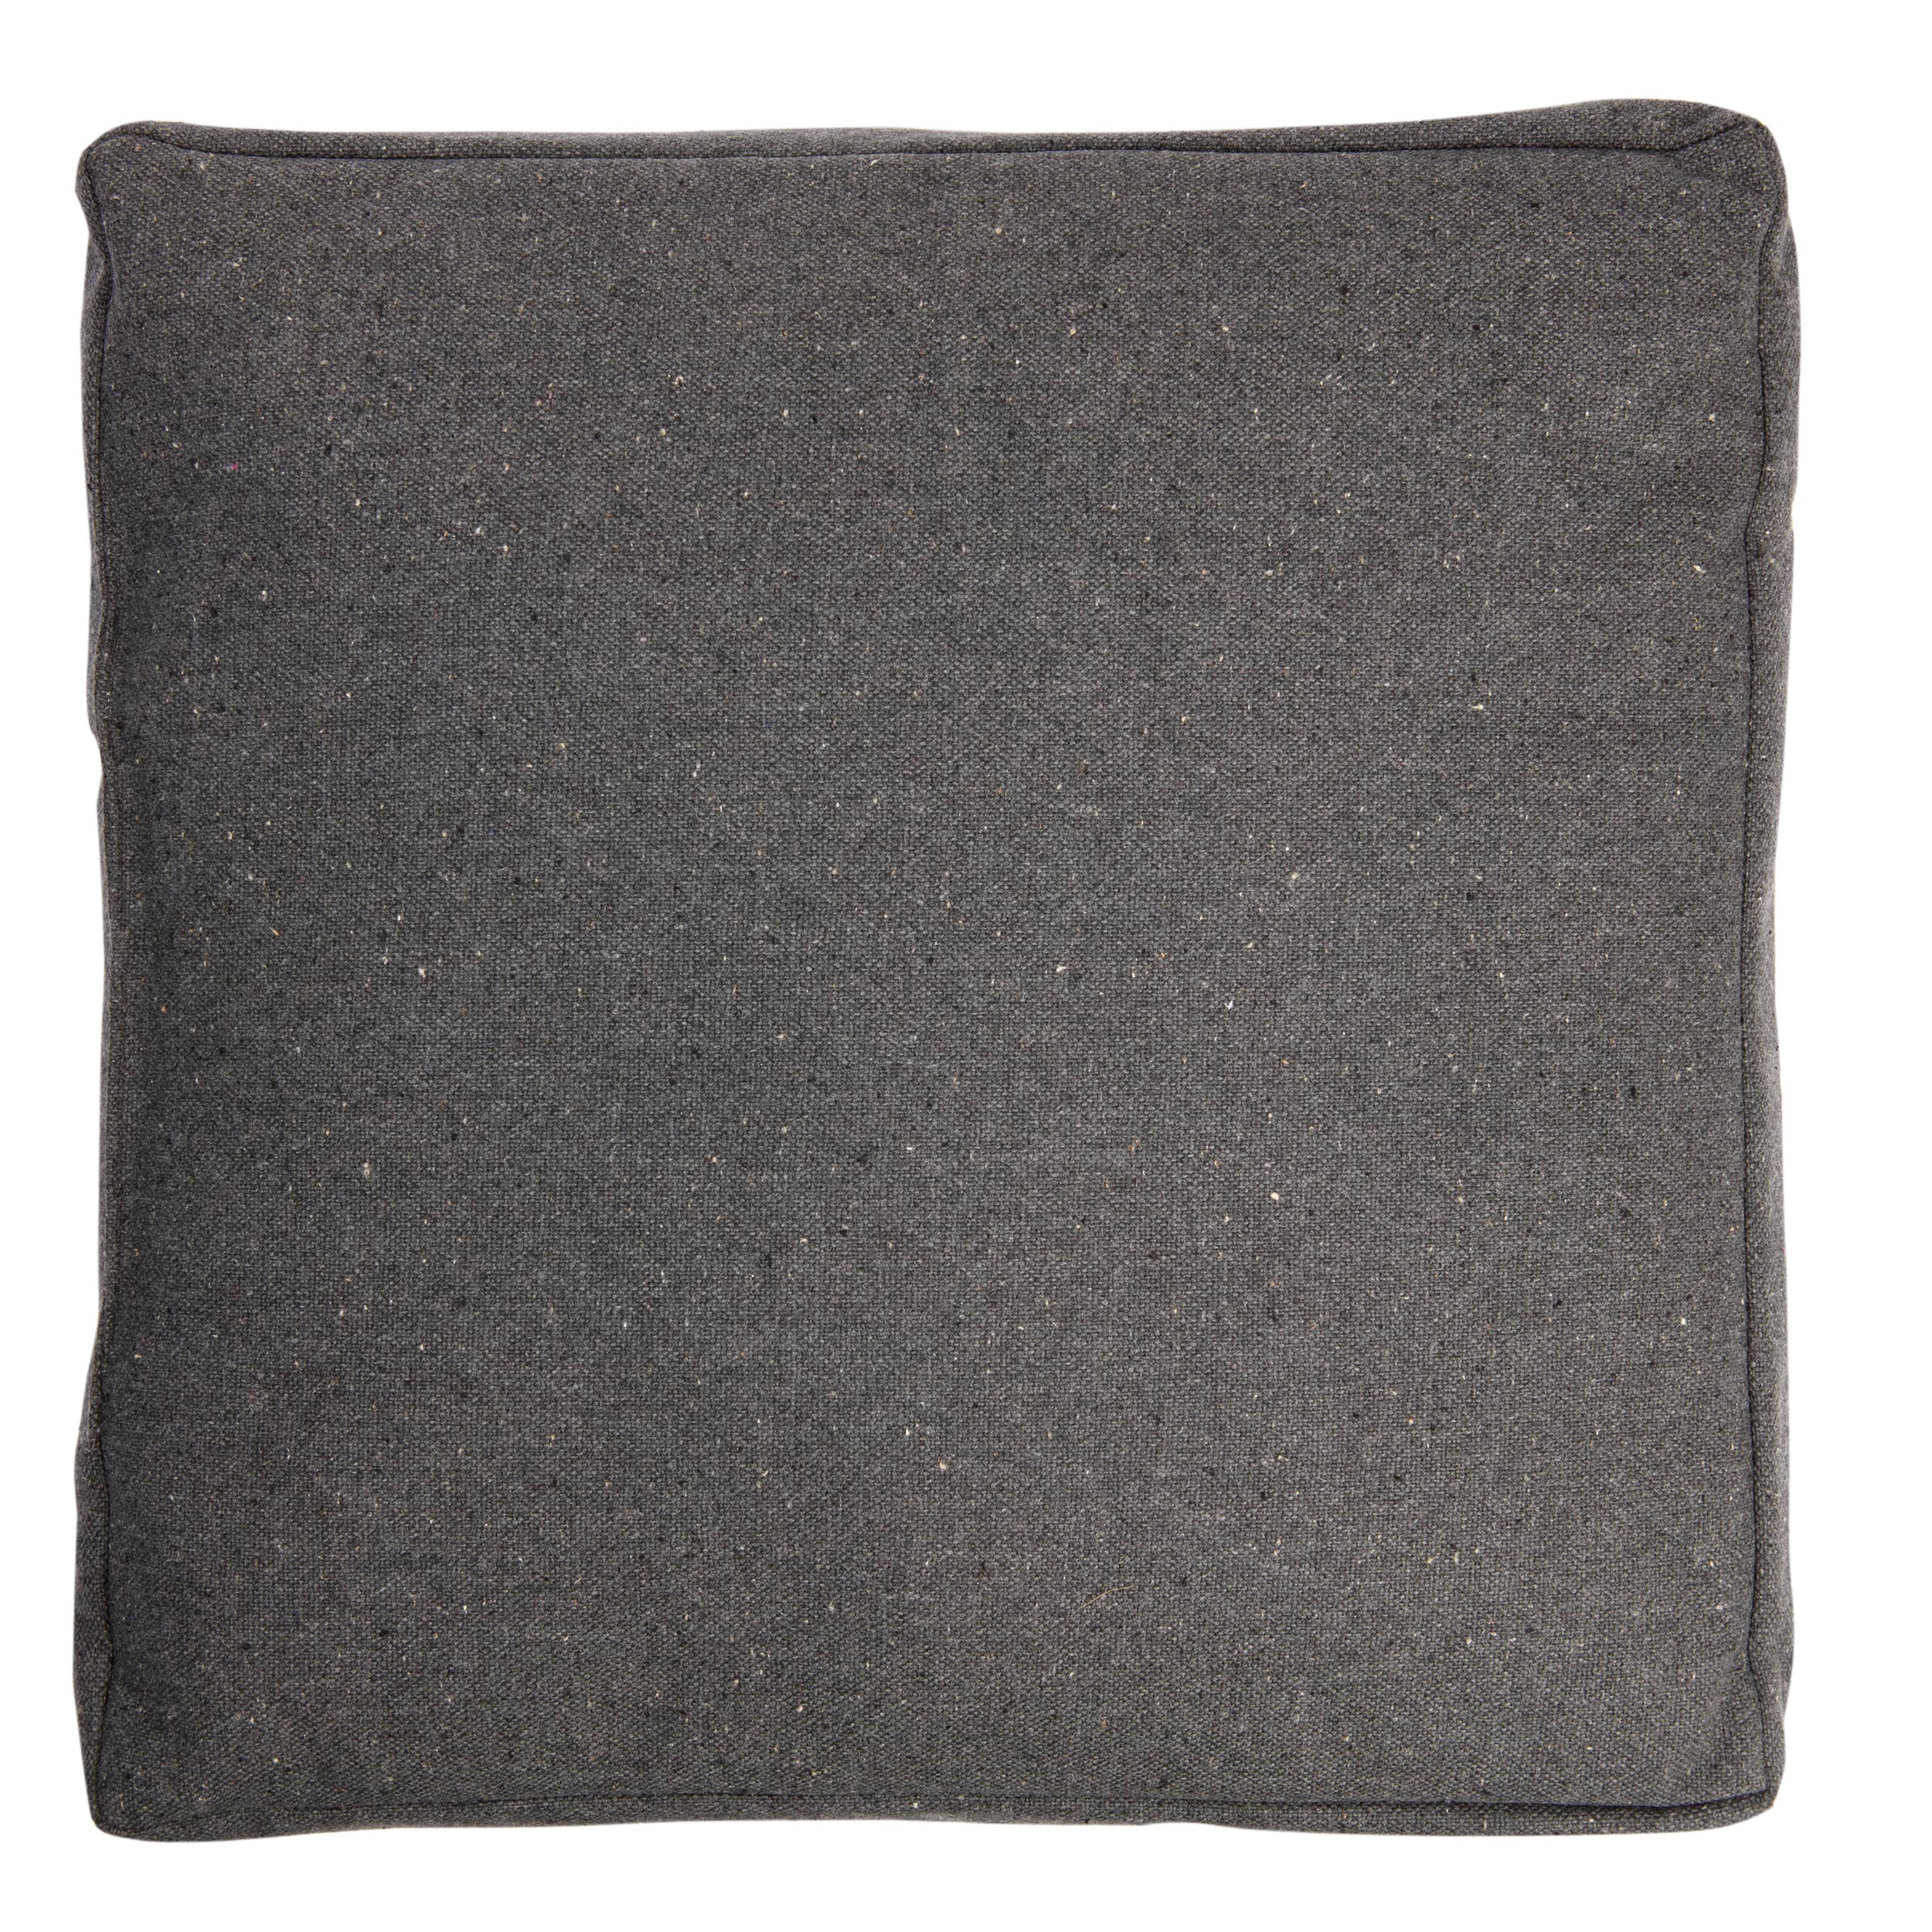 Coussin de sol imperméable Cocktail, gris anthracite l.45 x H.45 cm